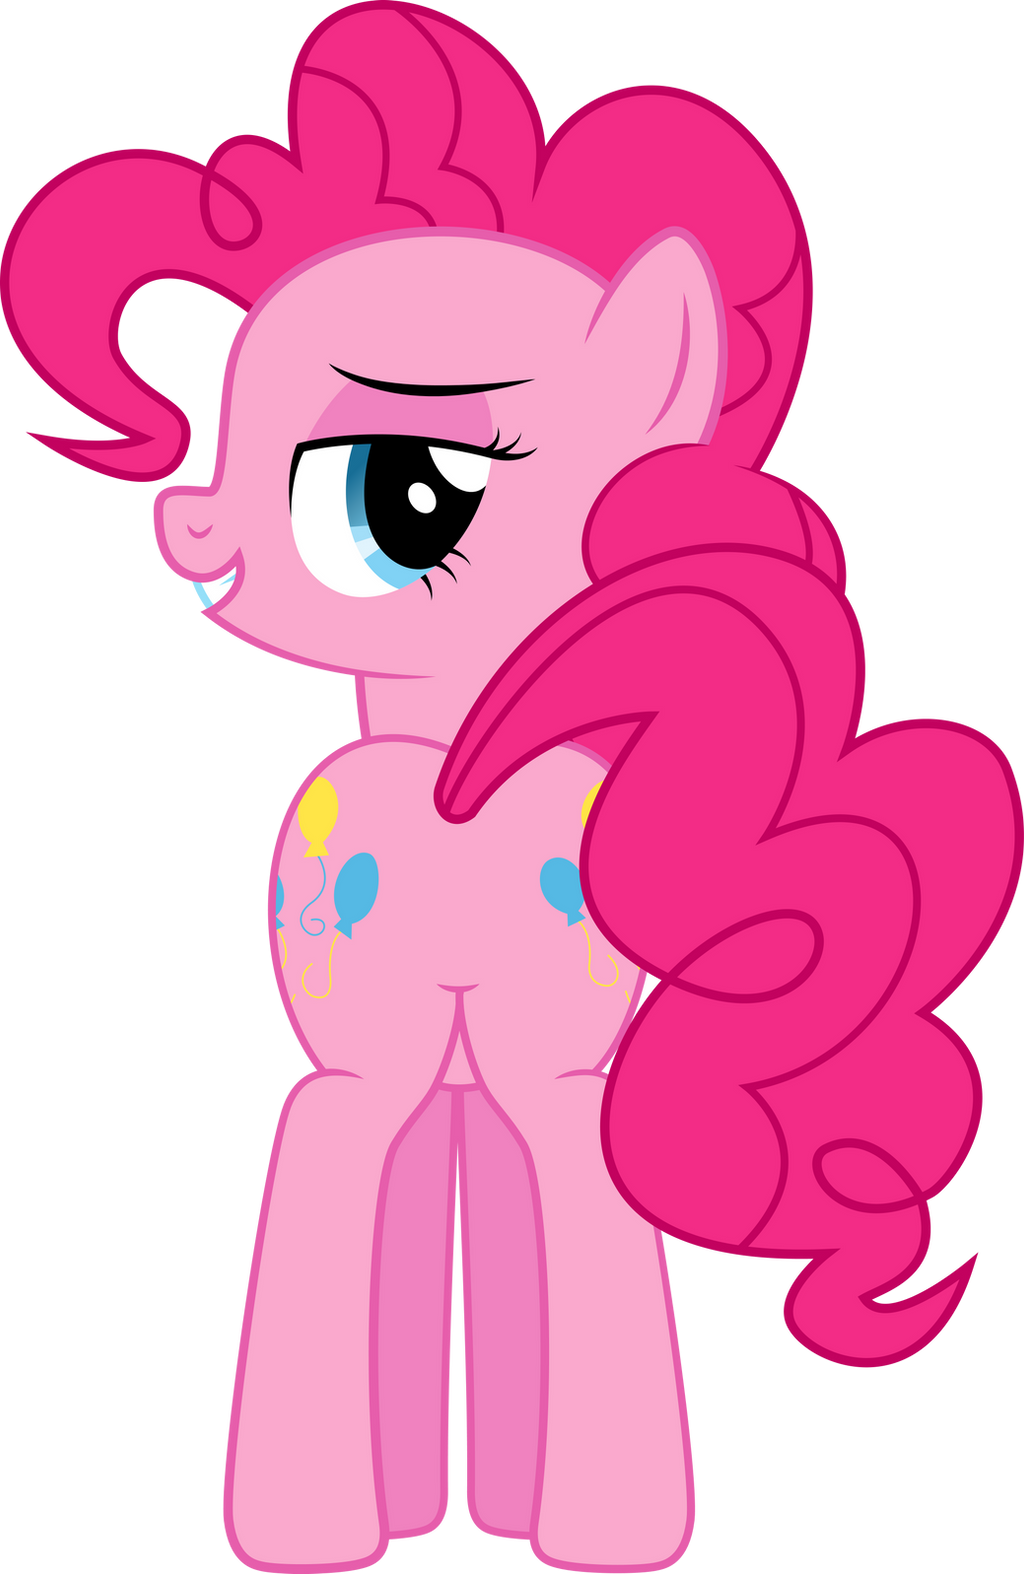 Pinkie Pie - Dat Plot by MrCabezon